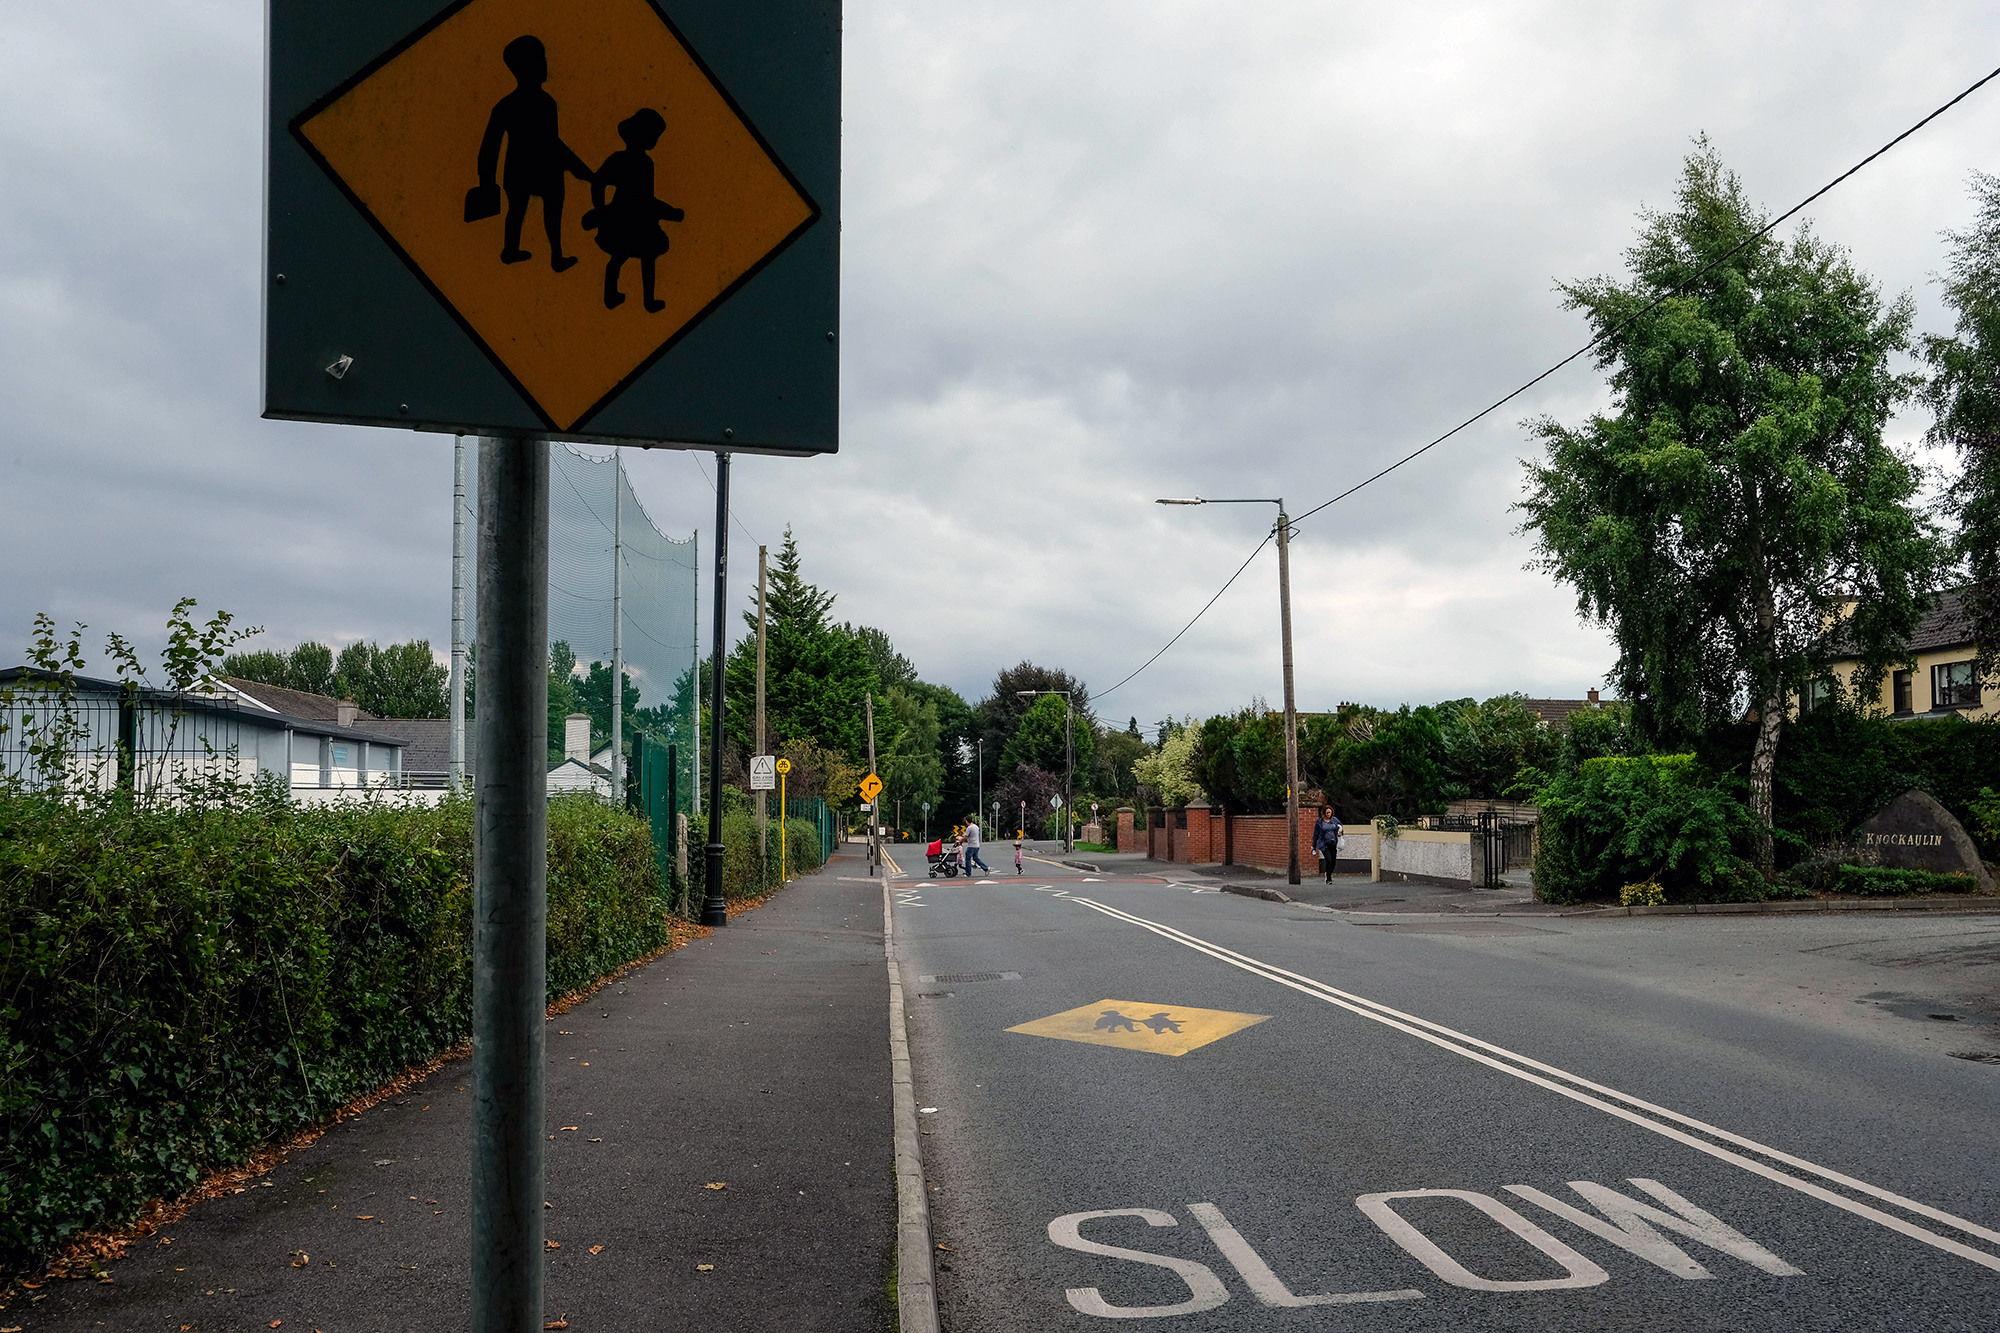 Road signs mark a school zone in Leixlip.